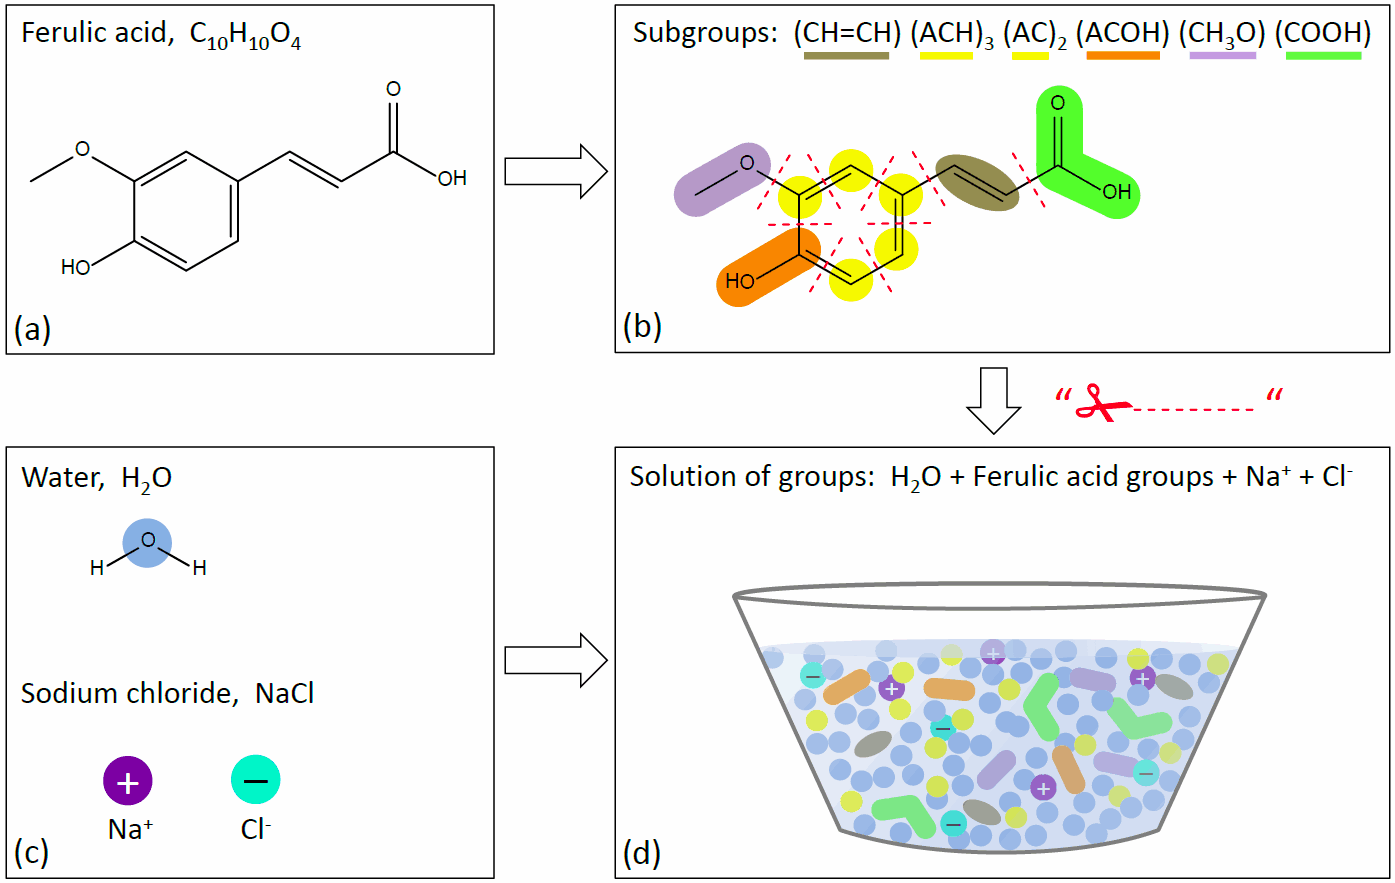 Fig. 3: Sketch of AIOMFAC subgroup assignments and solution of group mixing.